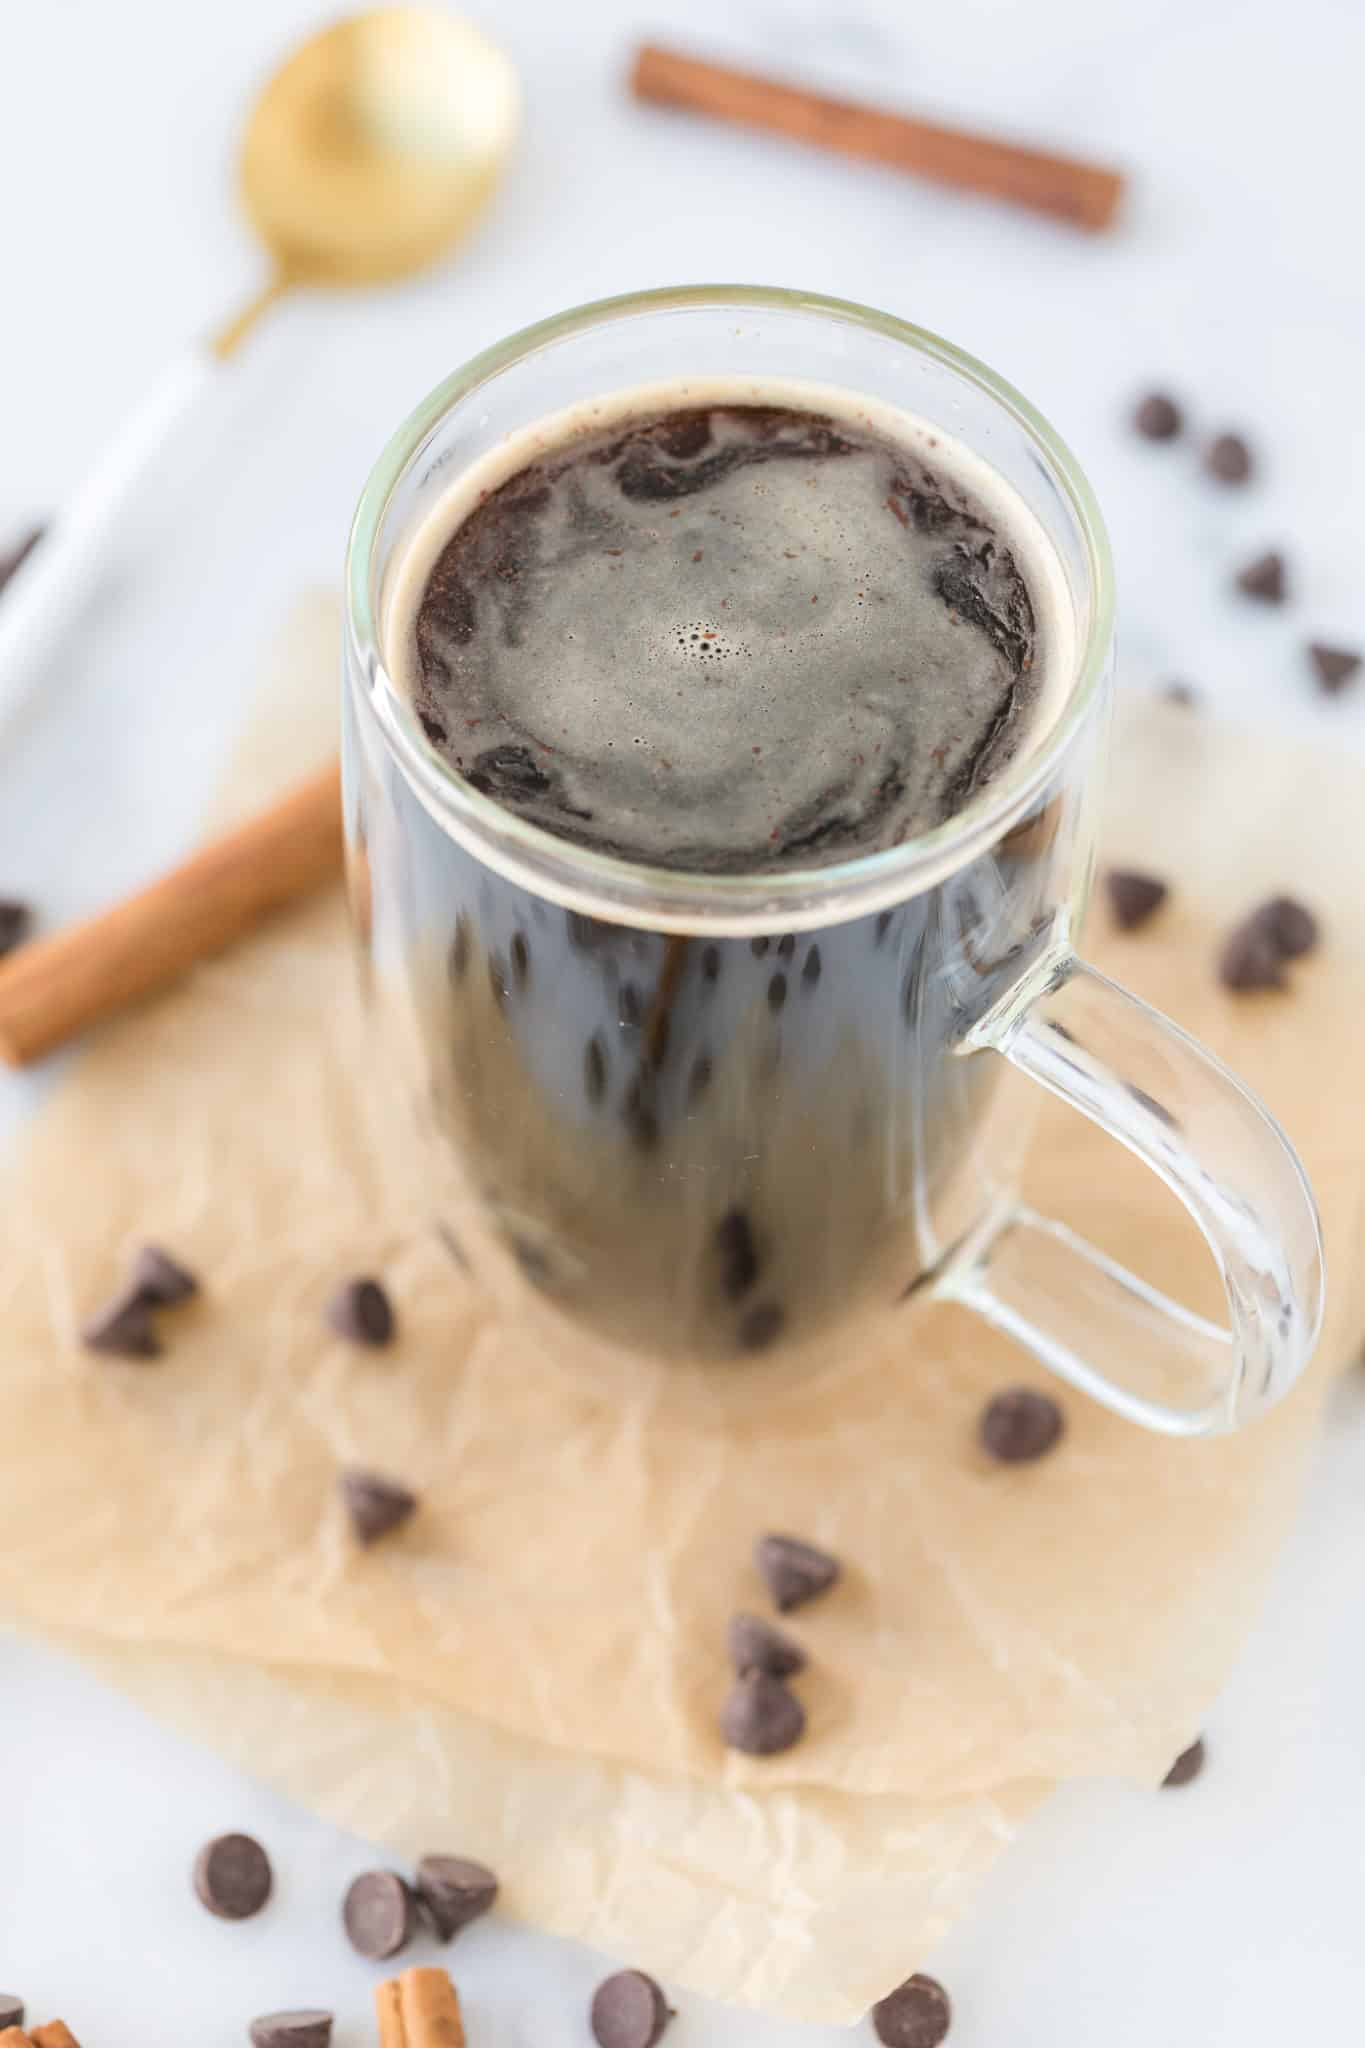 healthy hot chocolate served in a clear mug with a handle